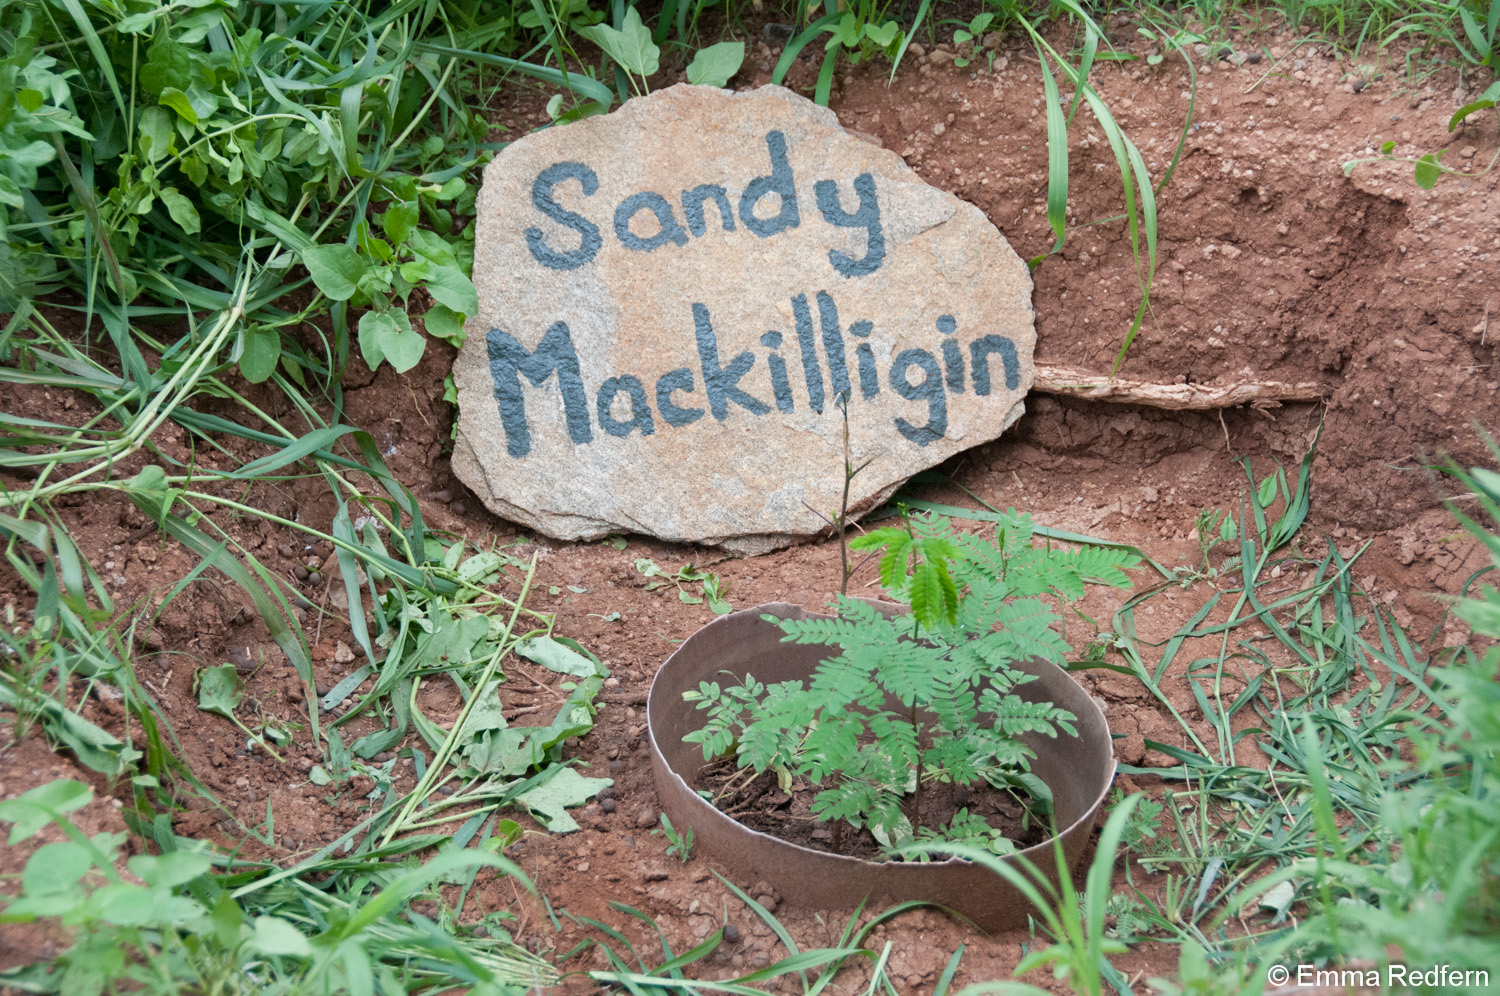 Sandy Mackilligin